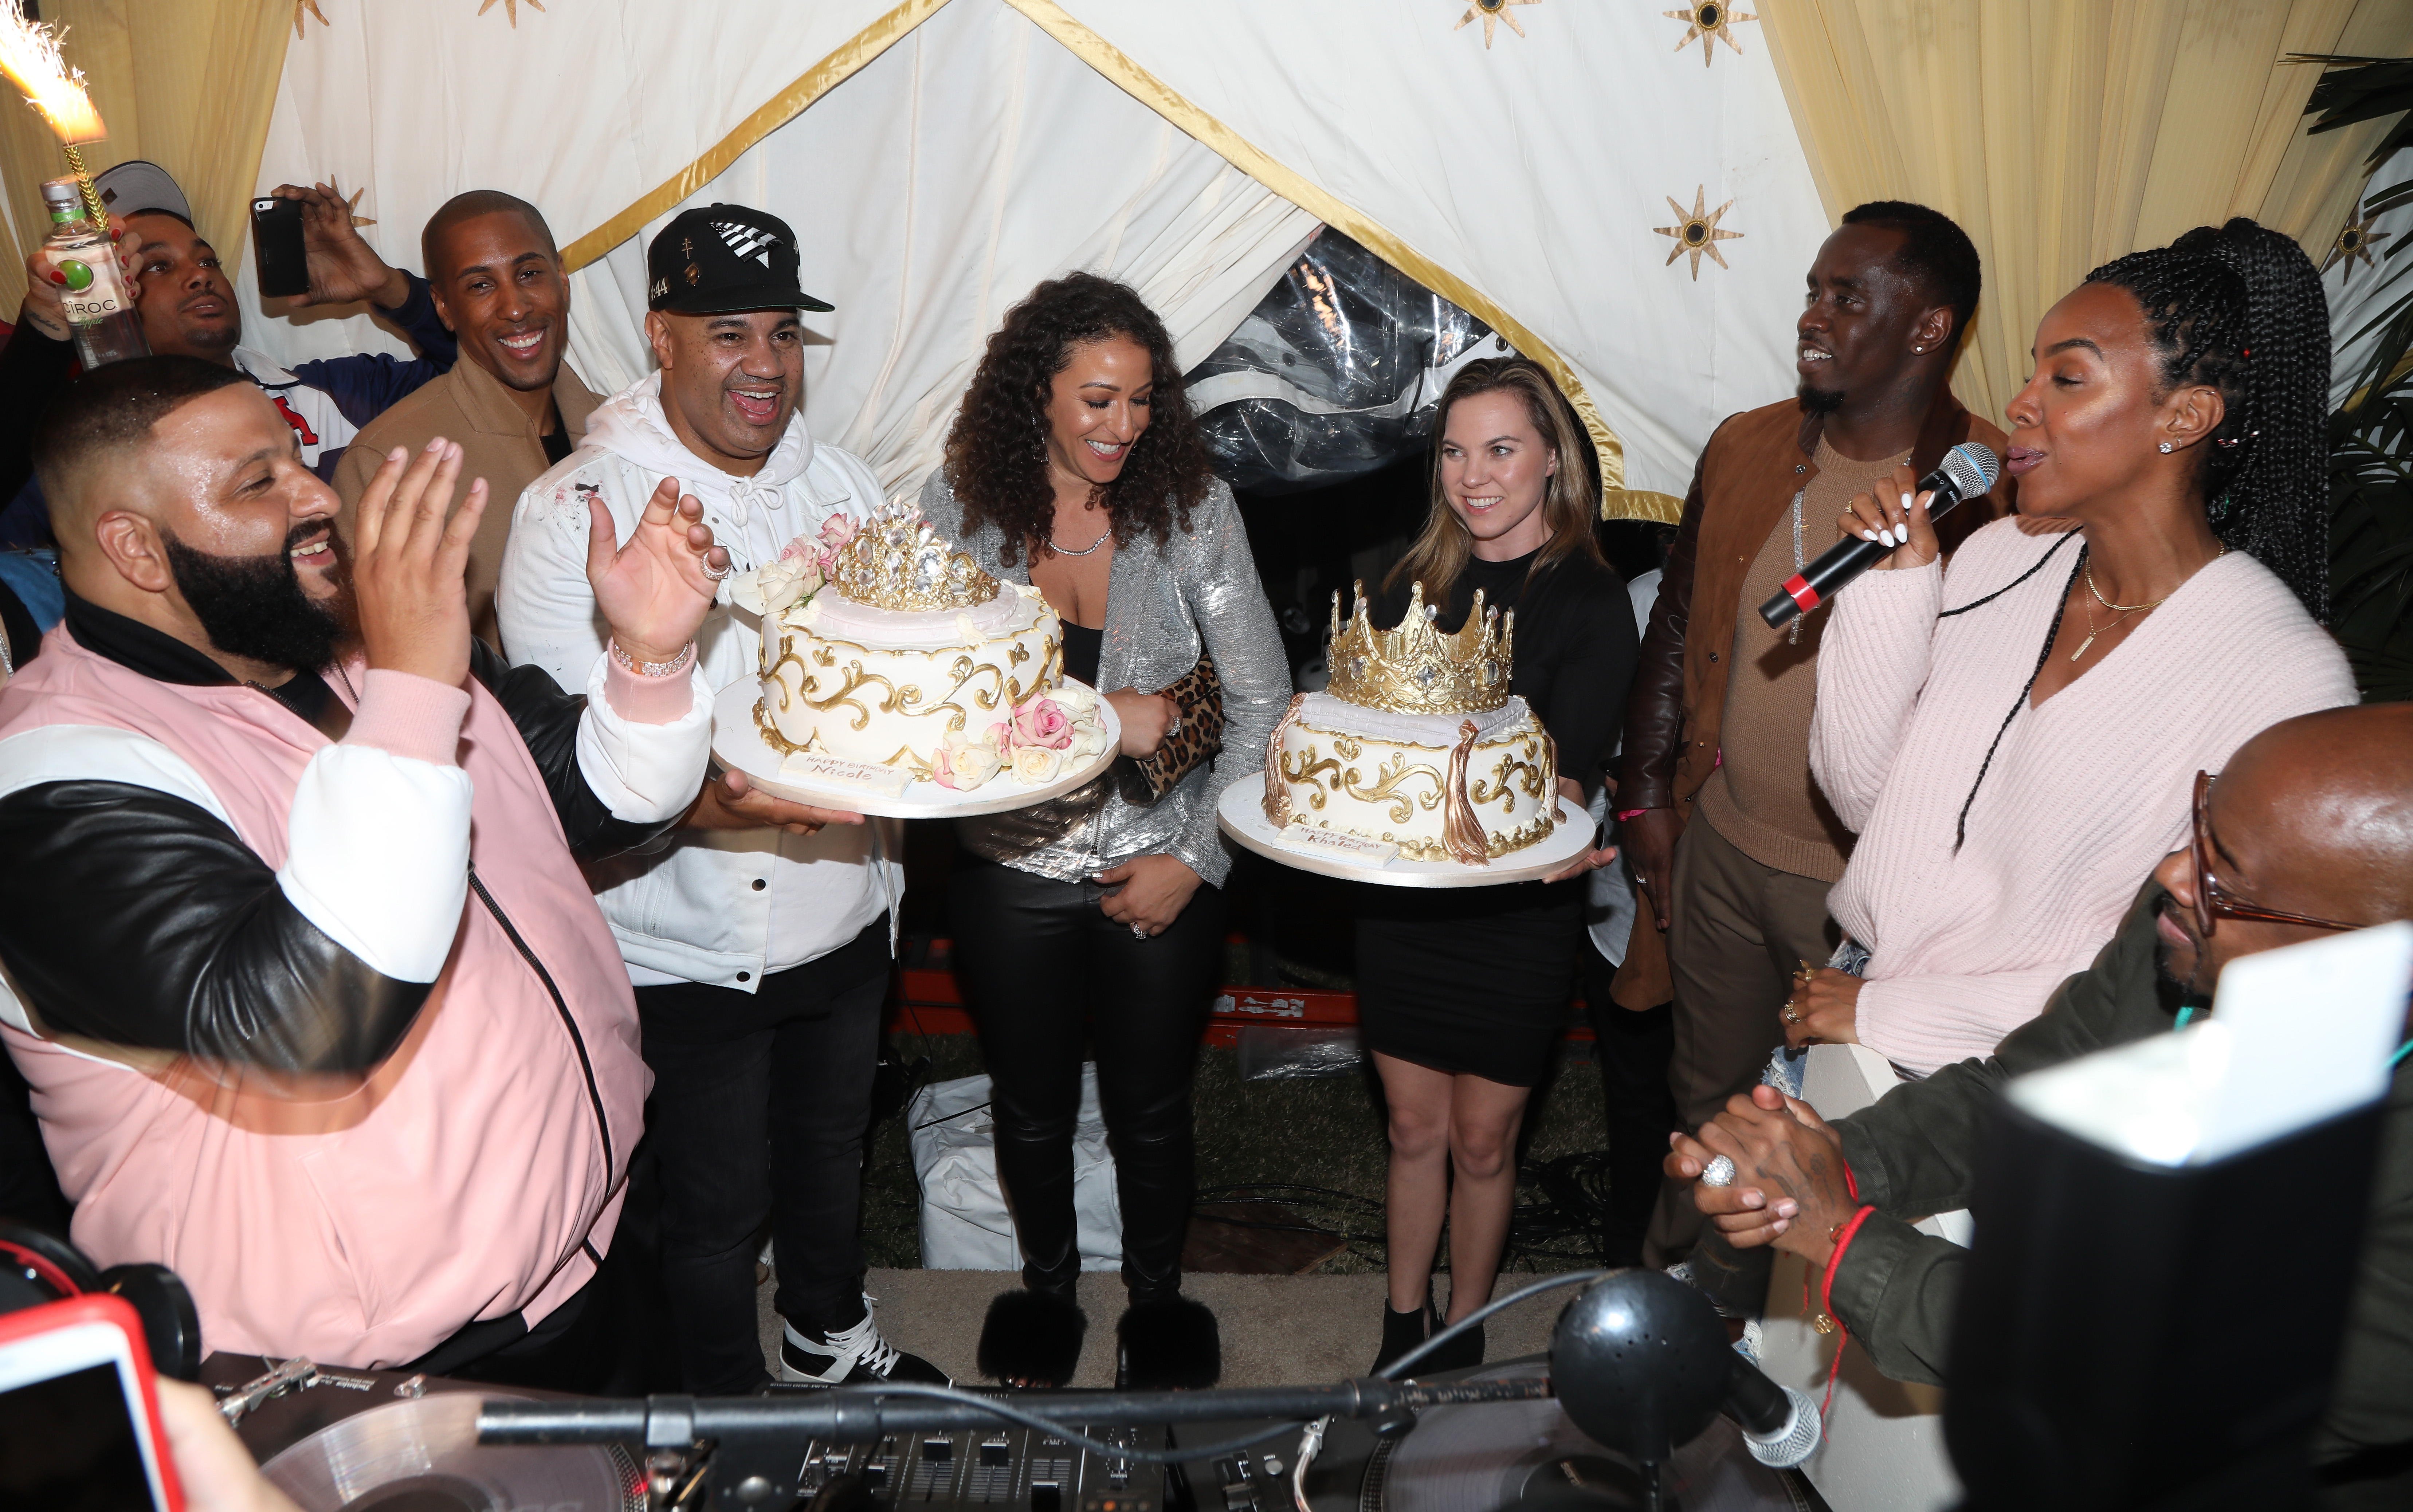 The Four Cast Sean 'Diddy' Combs, Fergie and Meghan Trainor Host DJ Khaled's Birthday Presented by CIROC and Fox in Beverly Hills